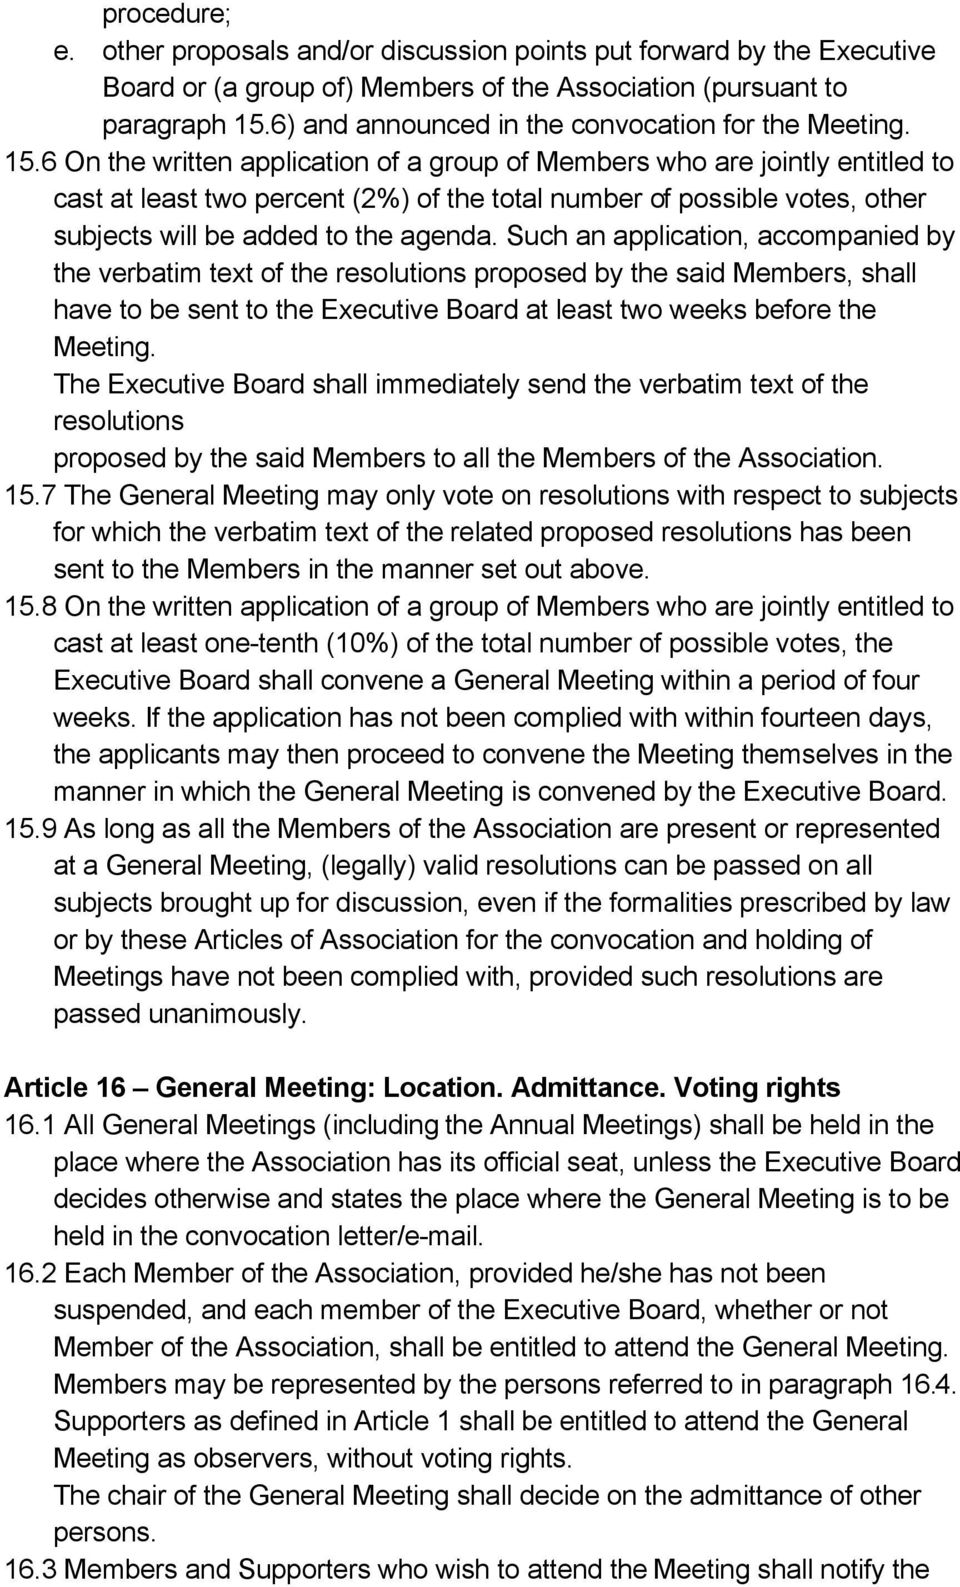 6 On the written application of a group of Members who are jointly entitled to cast at least two percent (2%) of the total number of possible votes, other subjects will be added to the agenda.